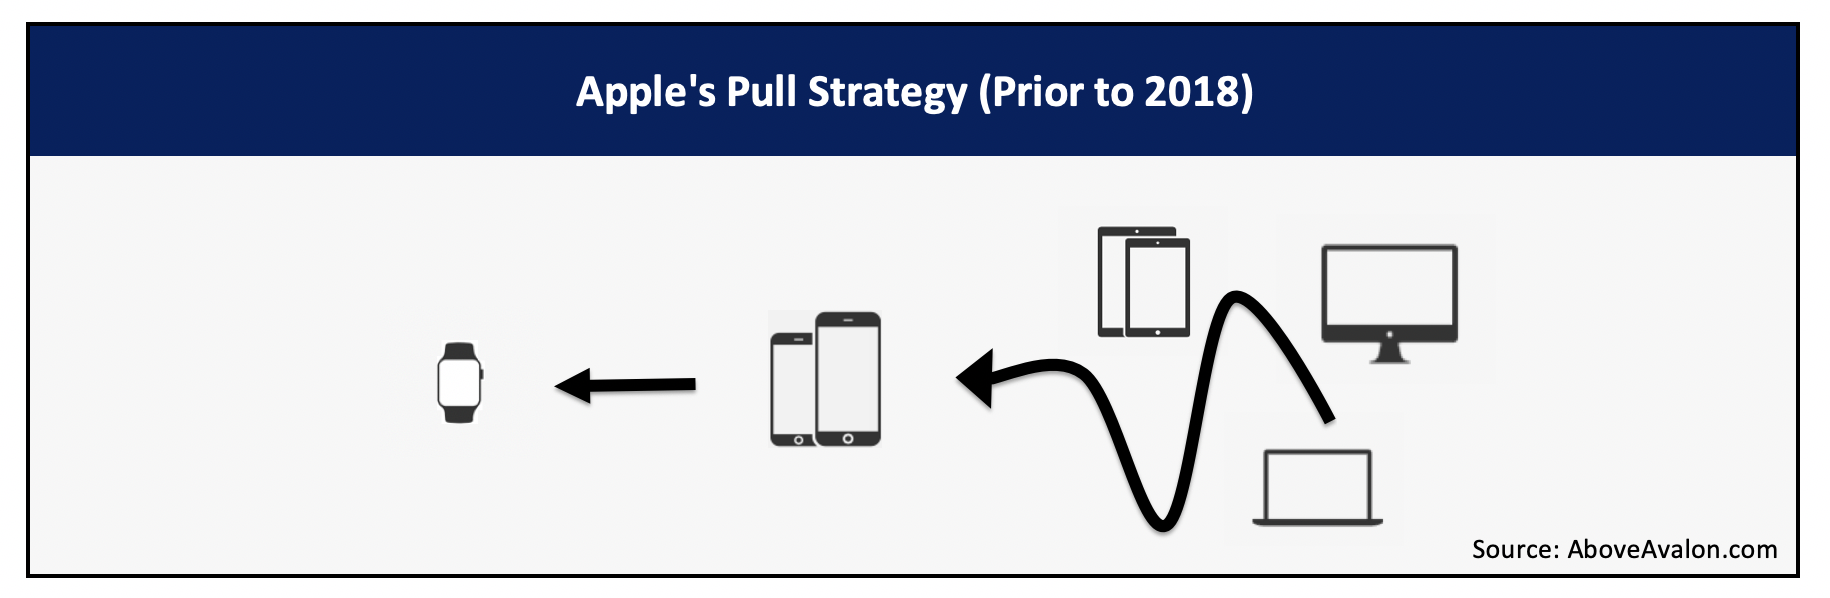 Apple's Pull Strategy (Above Avalon)